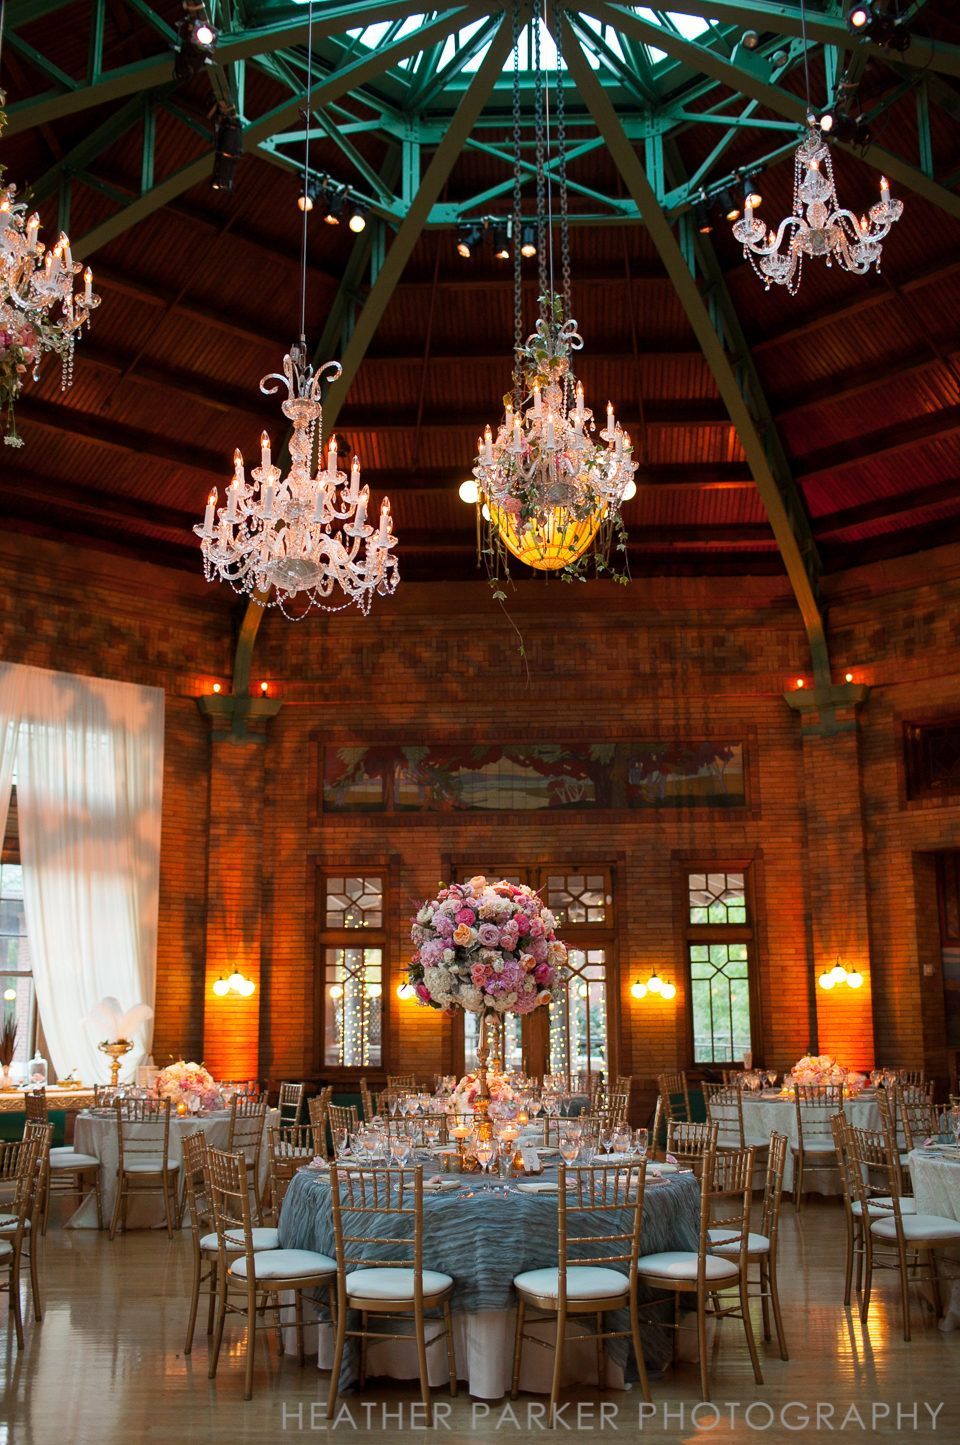 Romantic Chicago Wedding at Cafe Brauer from Heather